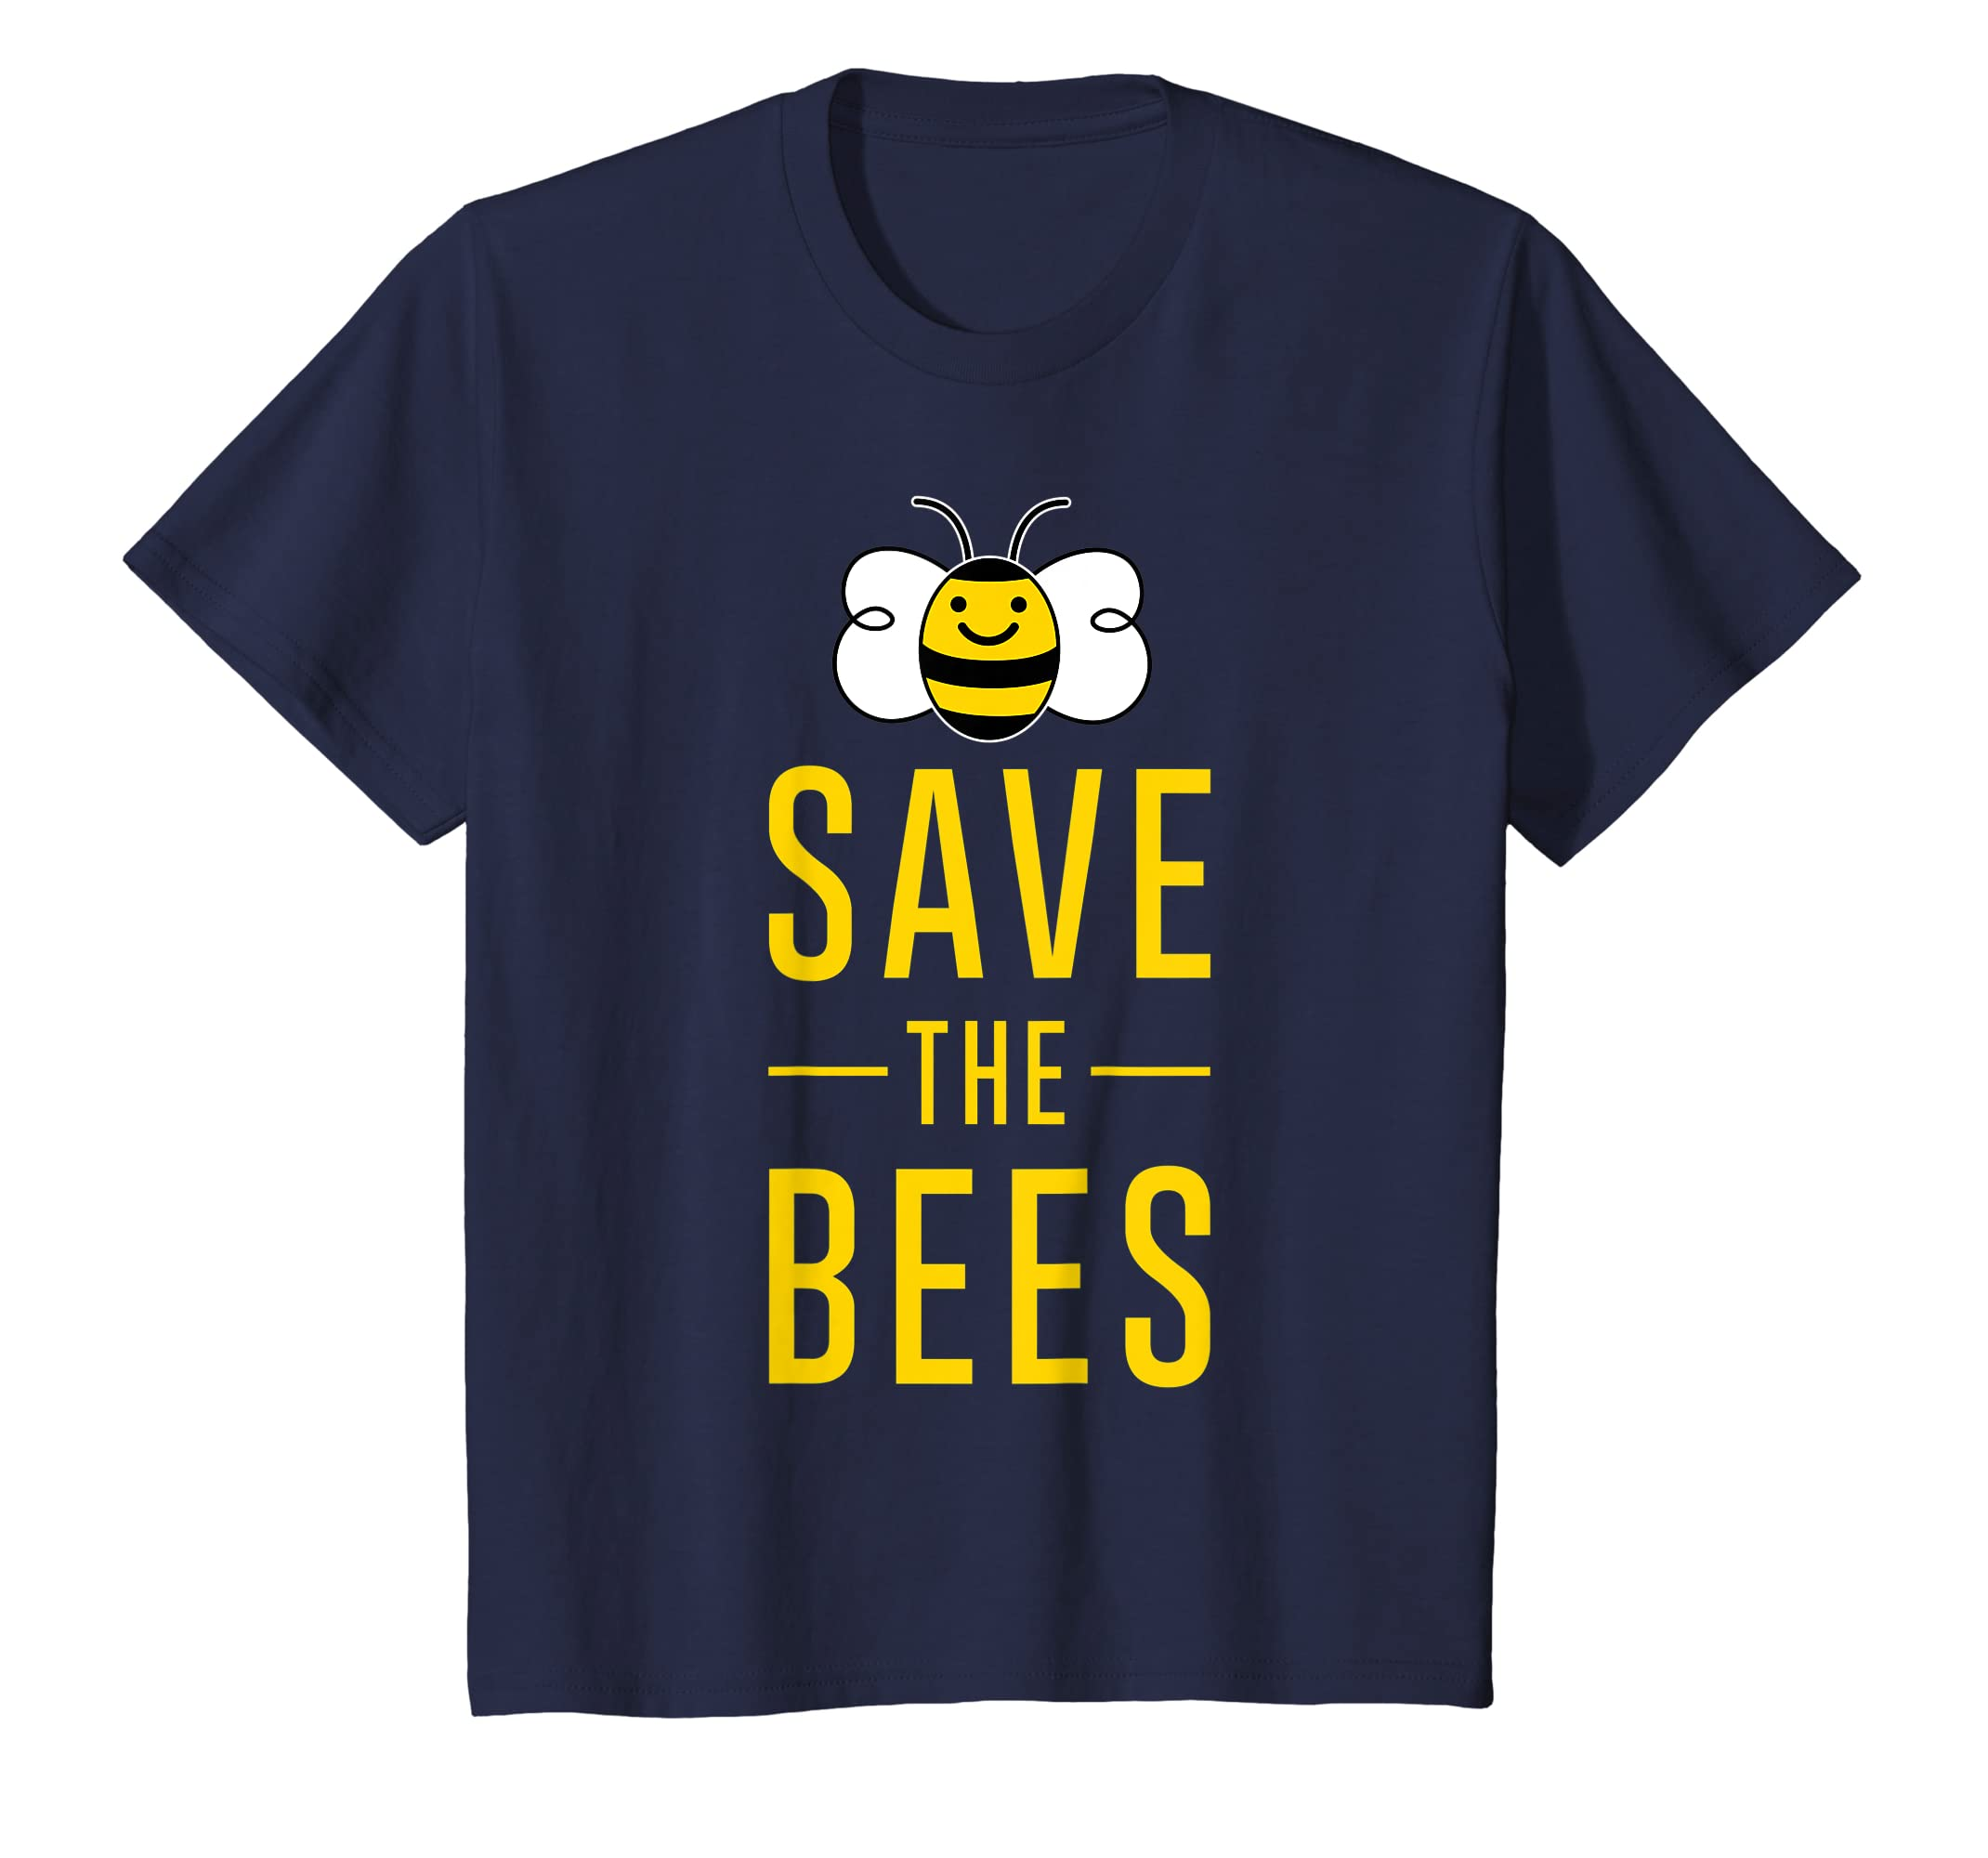 b75672e3dd7 Amazon.com  Save the Bees Shirt for Honeybee Lovers and Beekeepers  Clothing